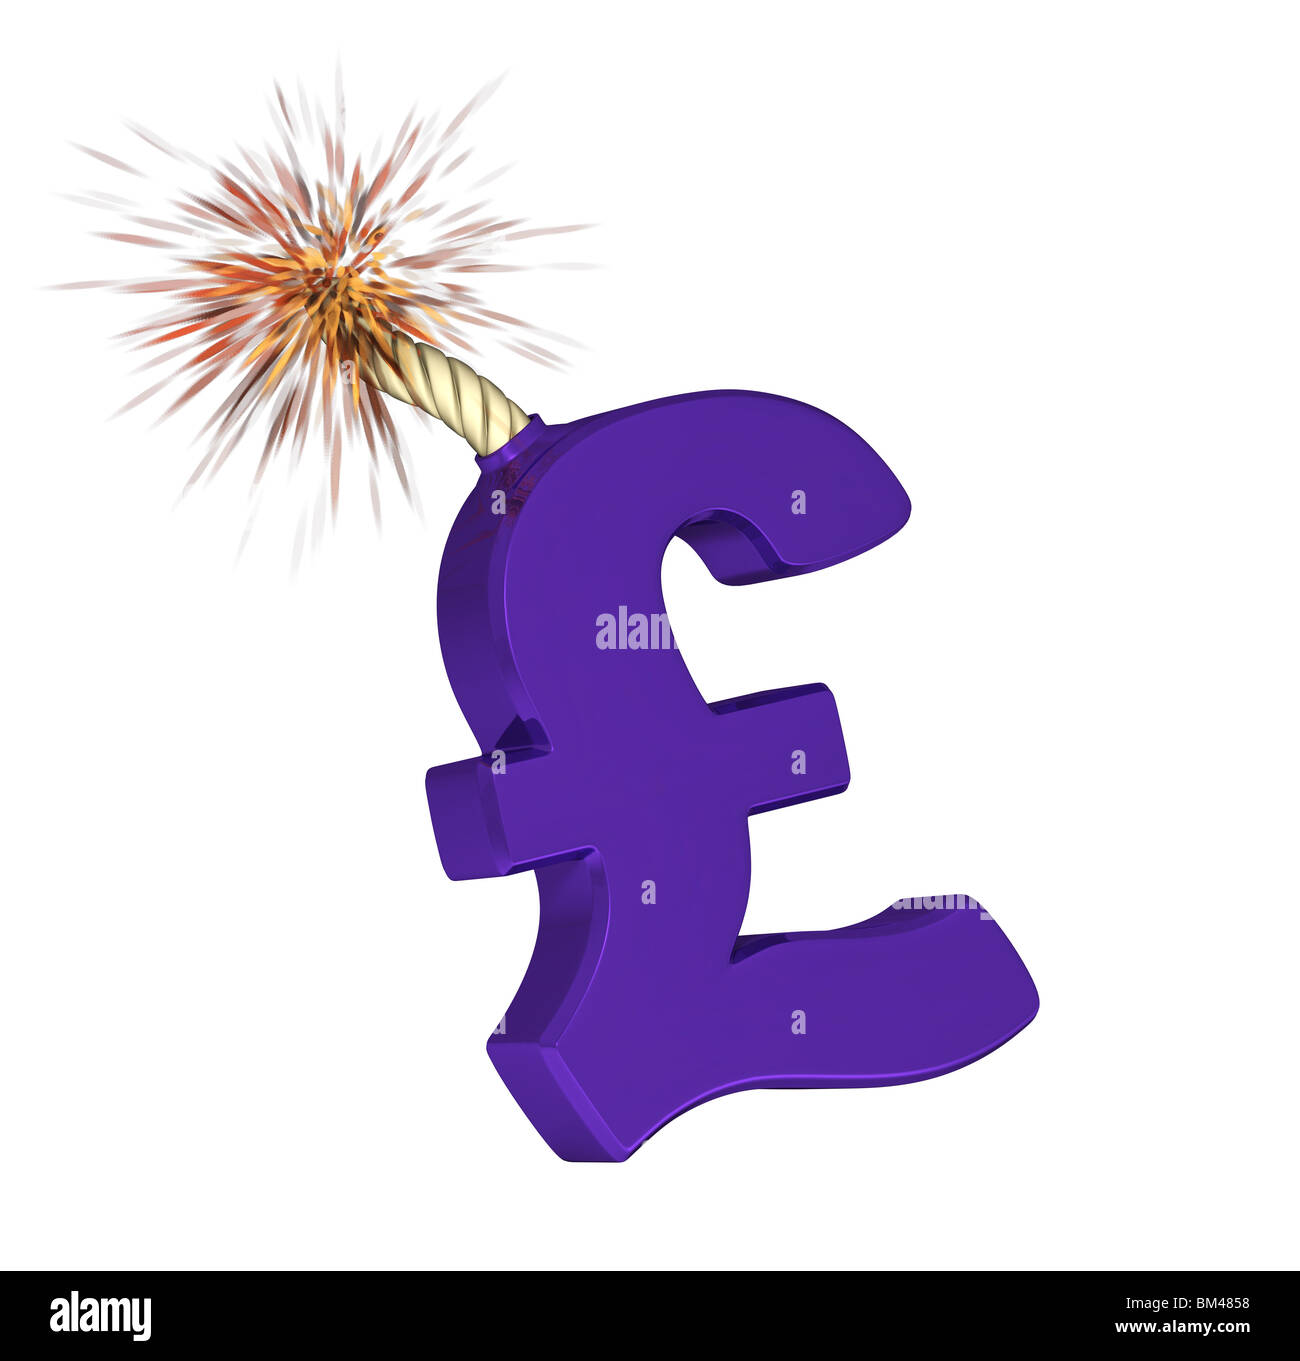 It's a Pound symbol that will explode, a picture for the market financial risk. - Stock Image